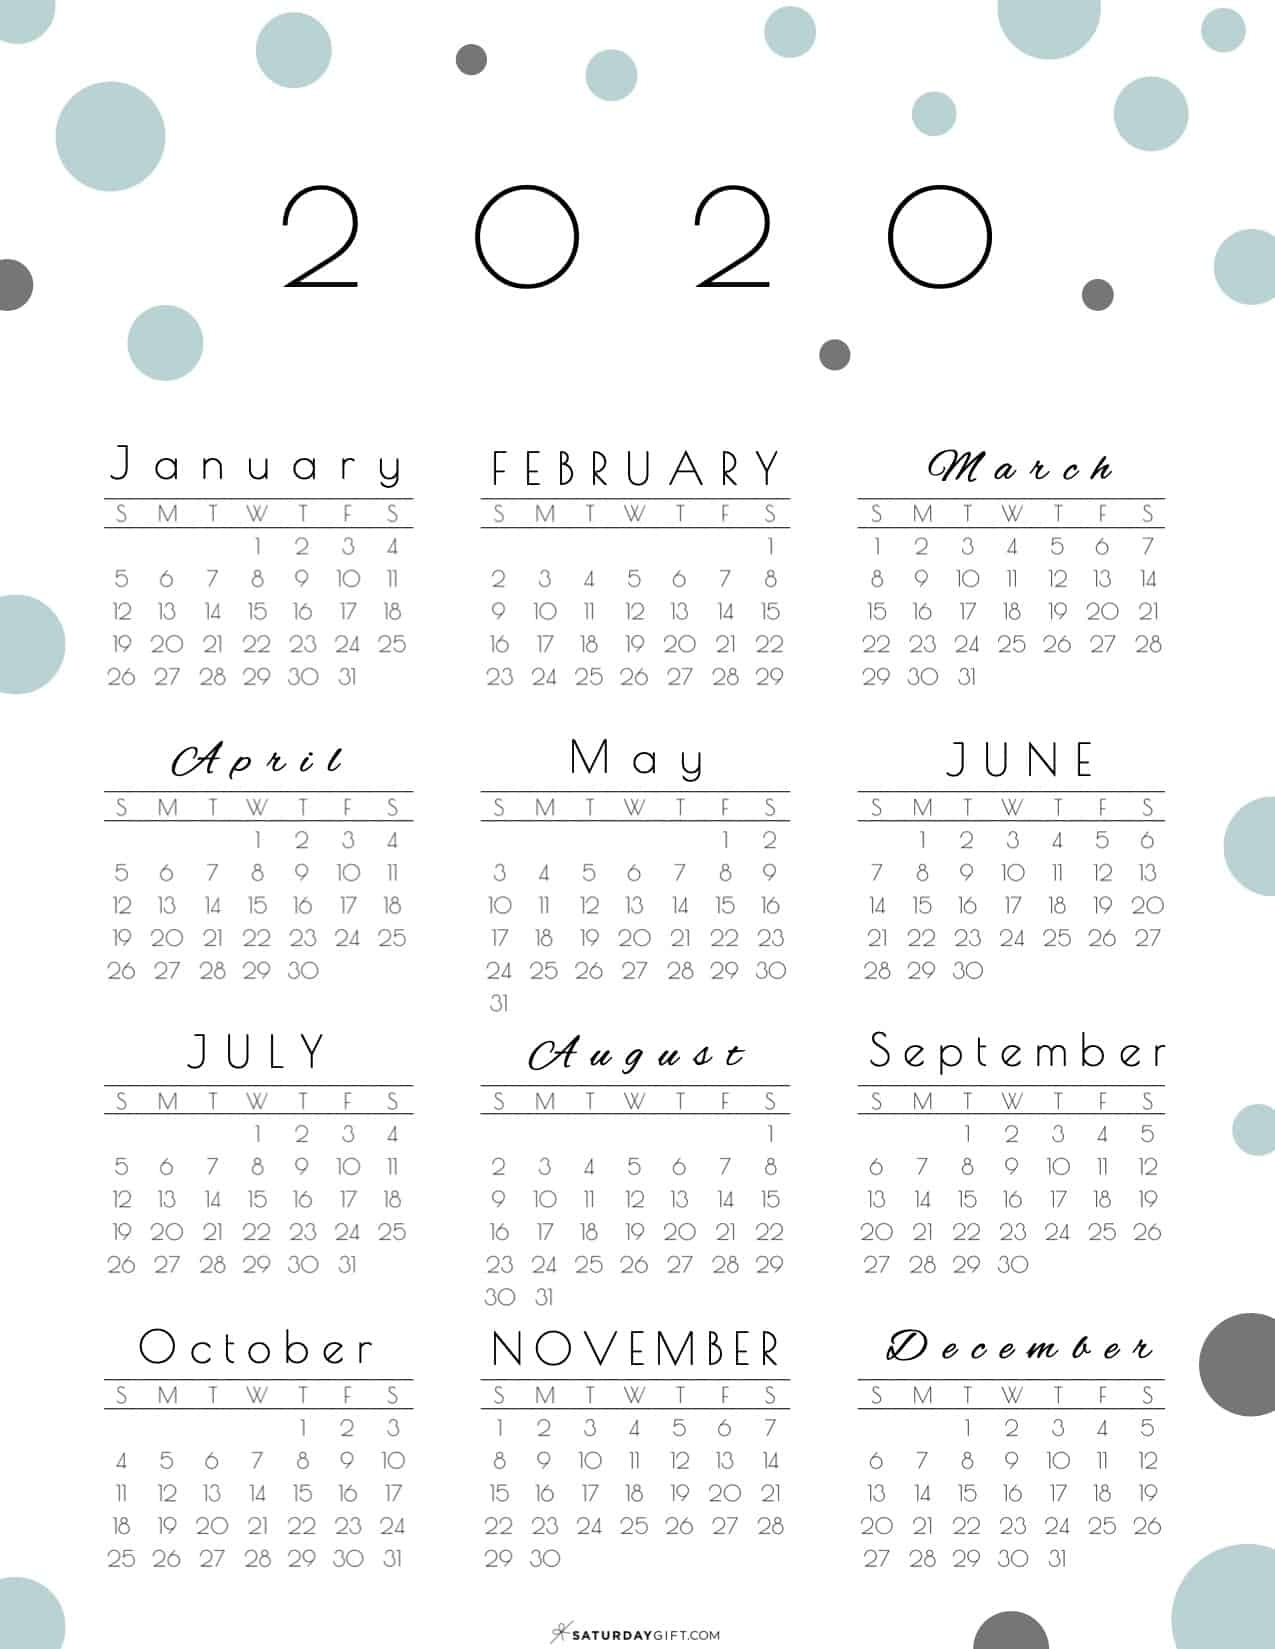 Year At A Glance Calendar 2020 - Pretty (And Free!) Printable with regard to 2020 Calendar Year At A Glance Printable